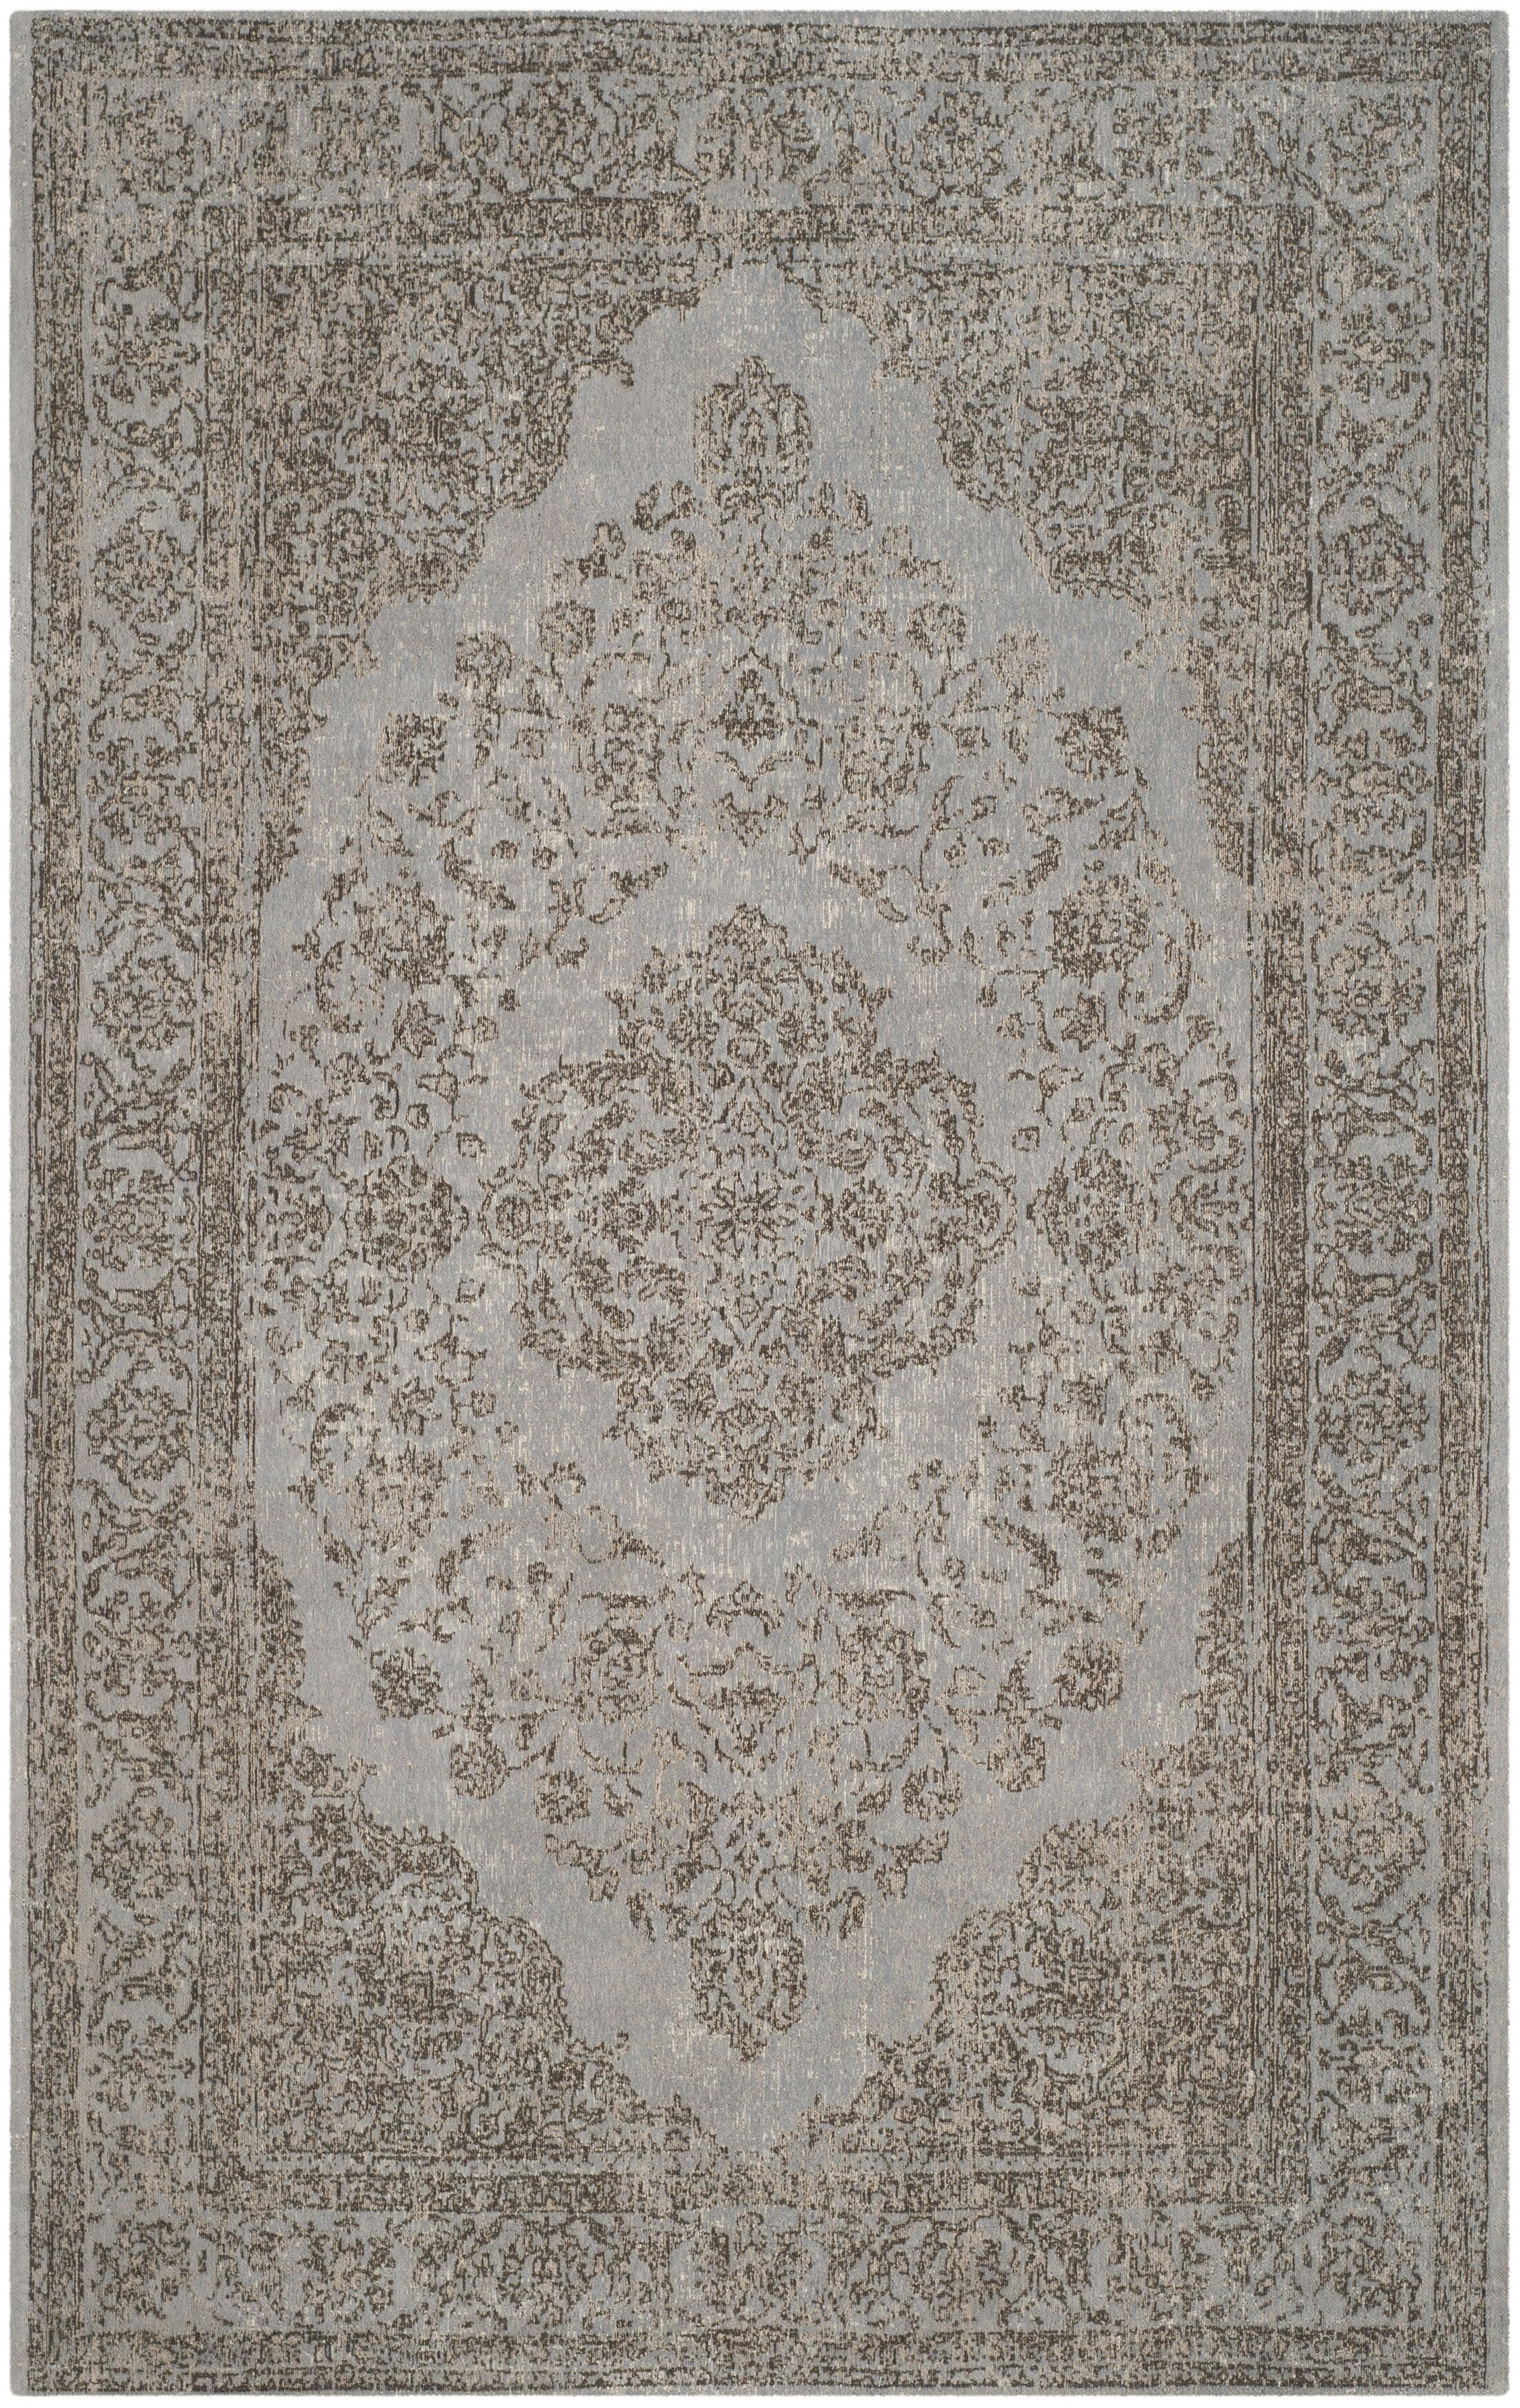 Mattapoisett Cotton Gray Area Rug Rug Size: Rectangle 4' x 6'